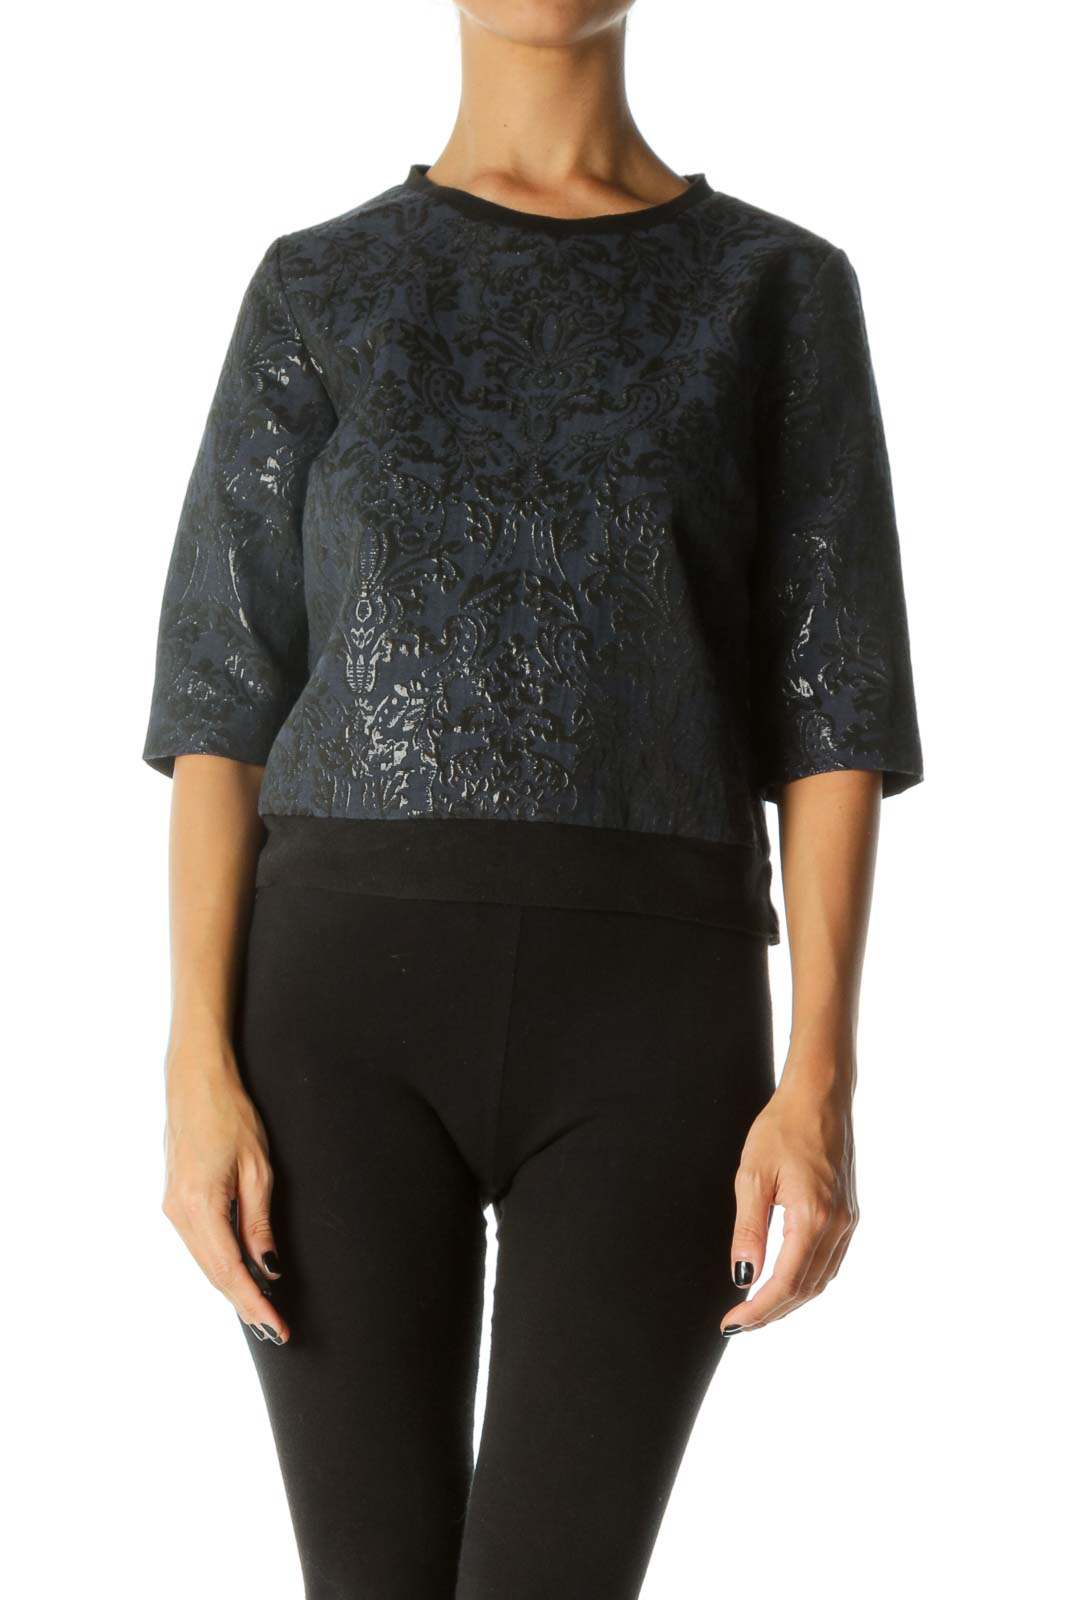 Black Blue Shiny Jacquard 3/4 Sleeve Textured Top